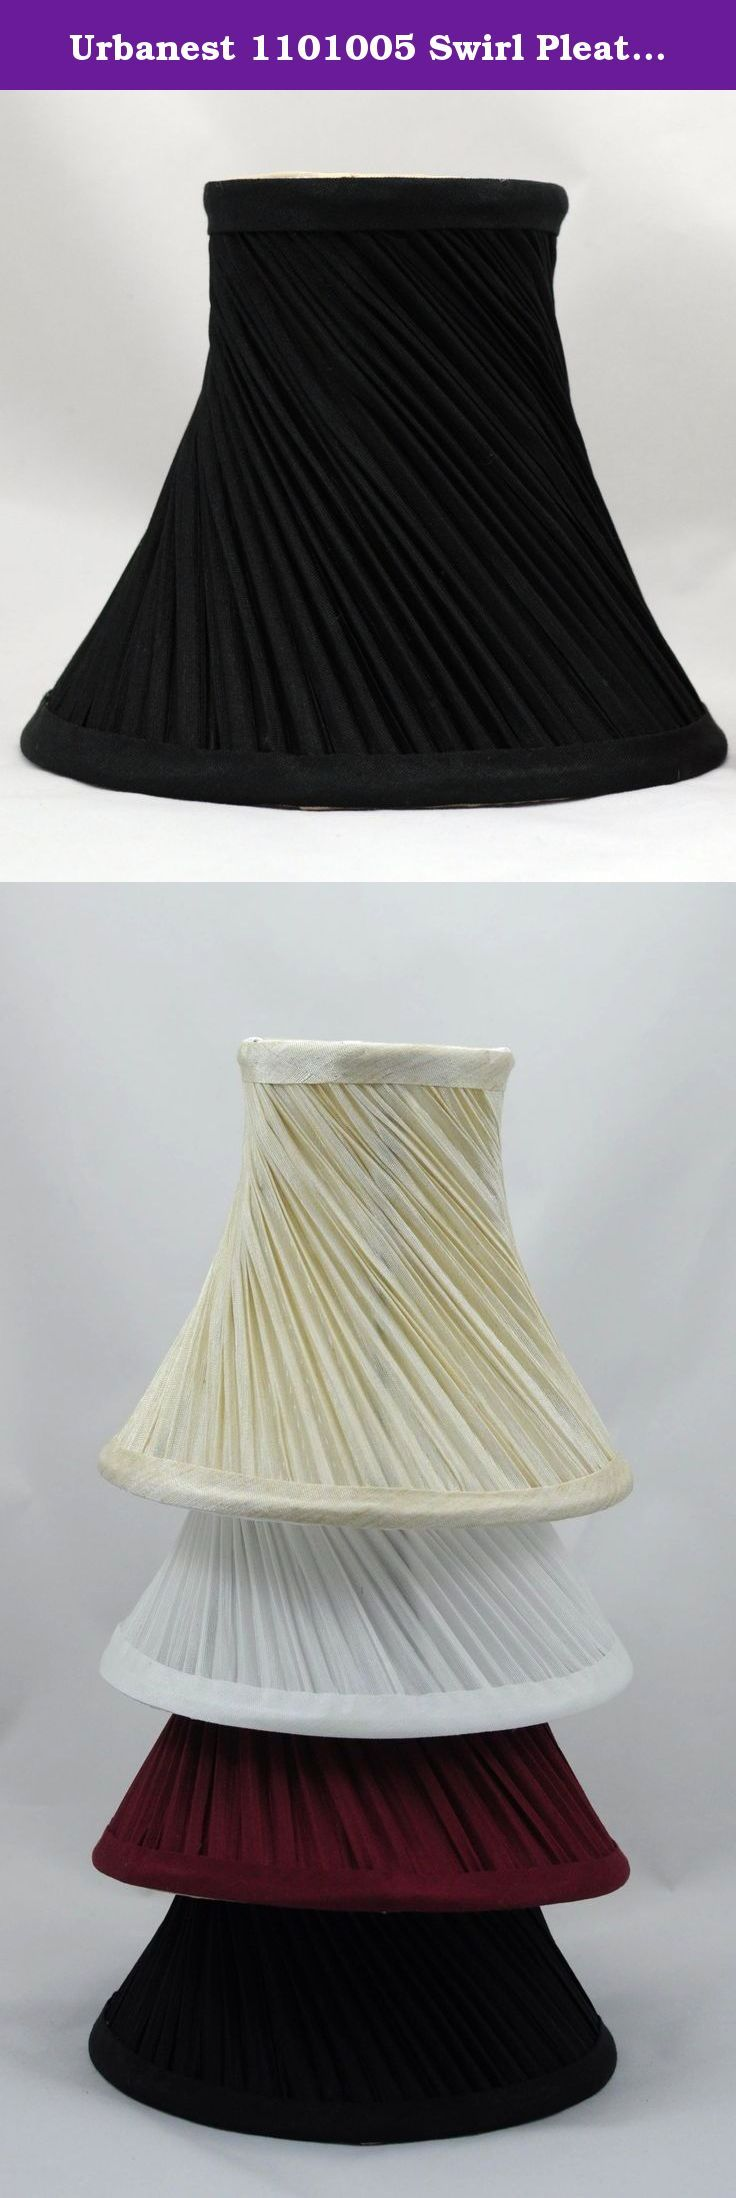 1532 best lamp shades lamps shades lighting ceiling fans urbanest 1101005 swirl pleated chandelier lamp shades 6 inch bell clip on black urbanest classic handmade swirl pleated chandelier lamp shades arubaitofo Choice Image